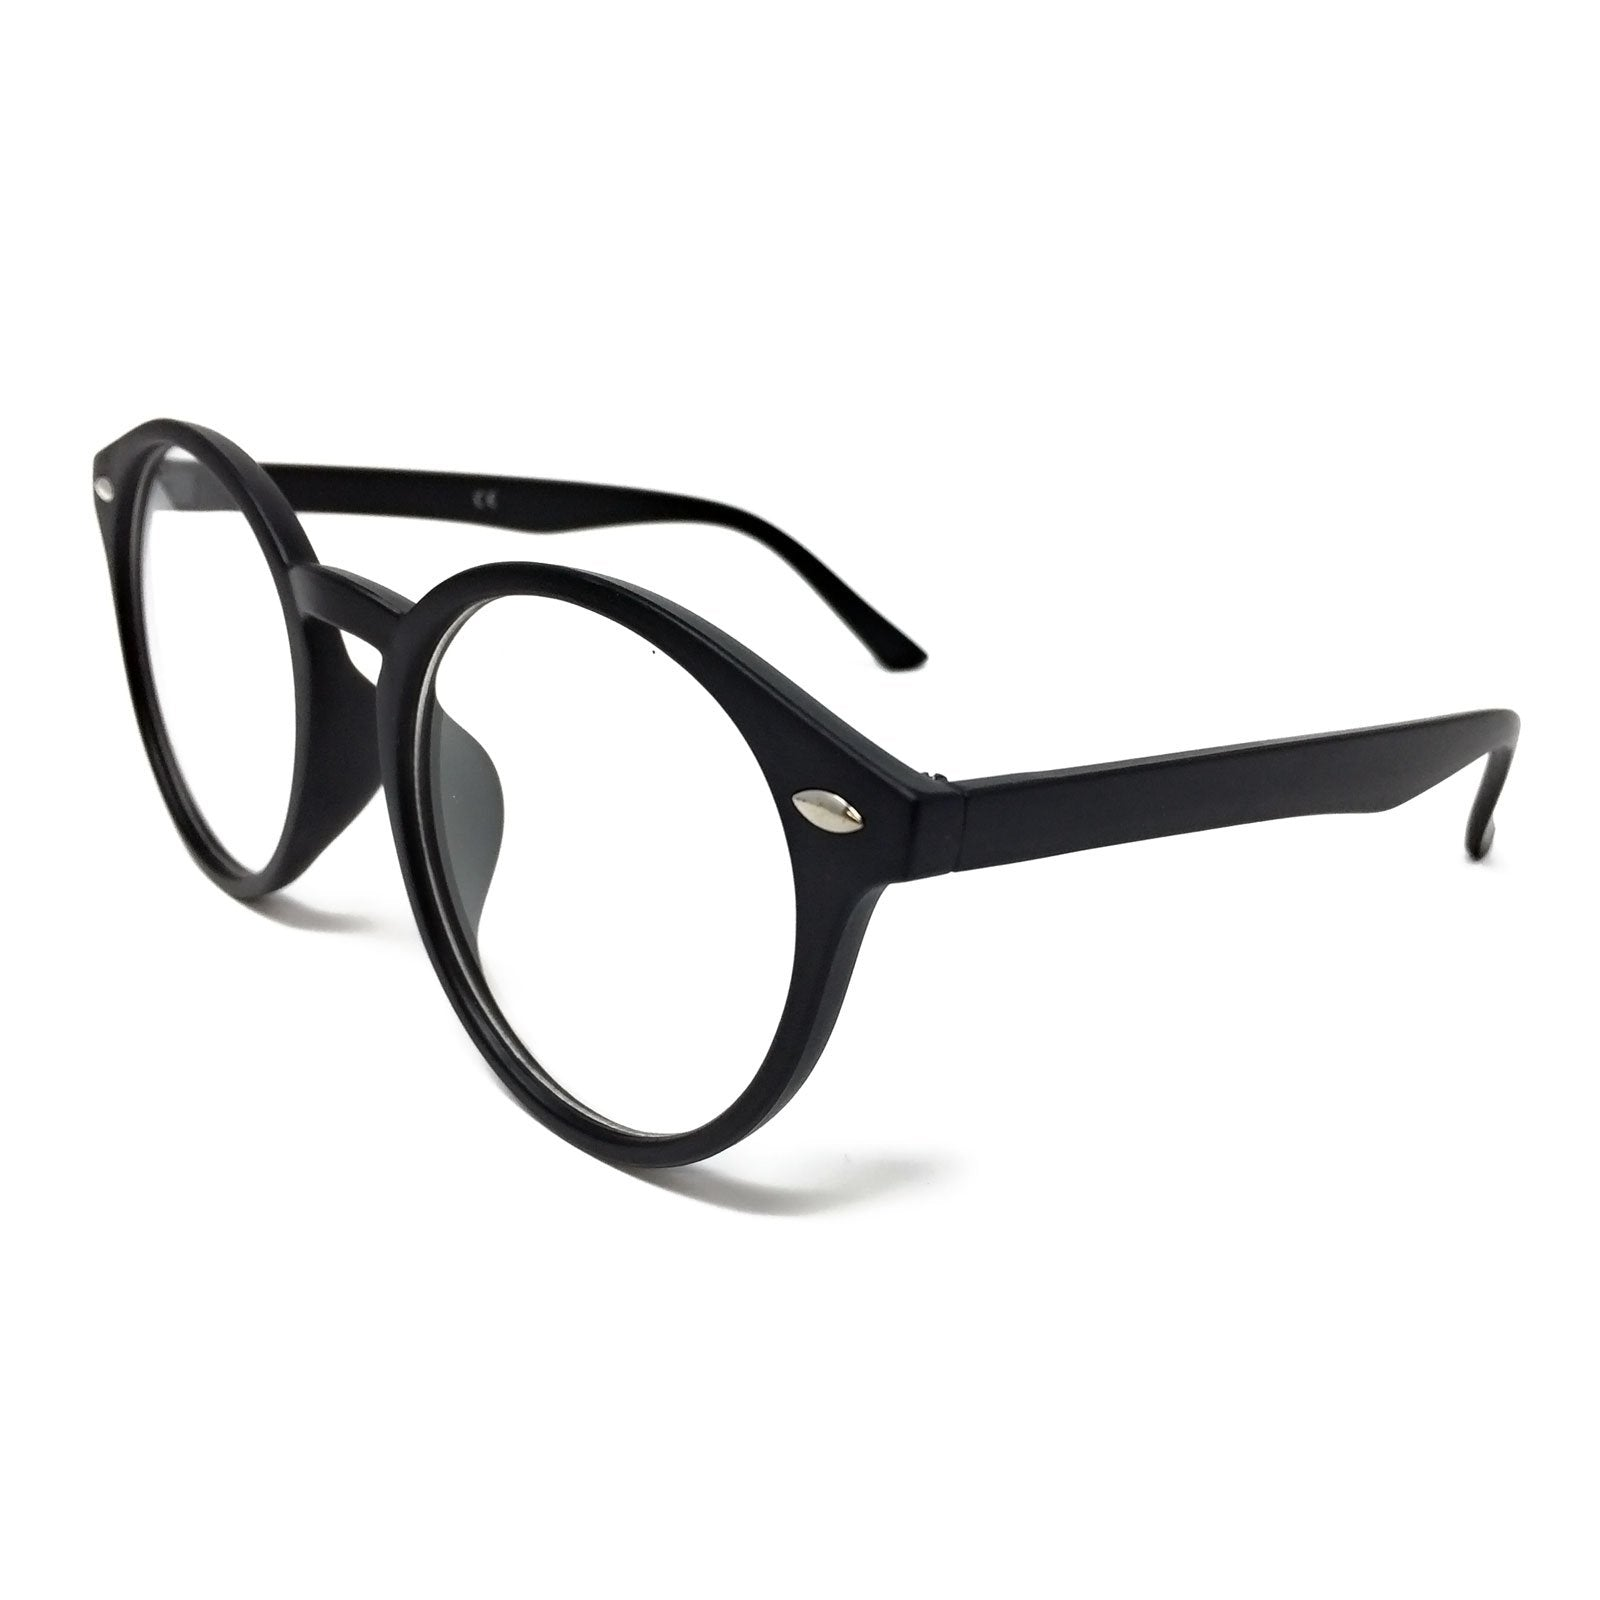 Large Round Clear Lens Glasses - Matte Black Frame - Bulk Prices ...